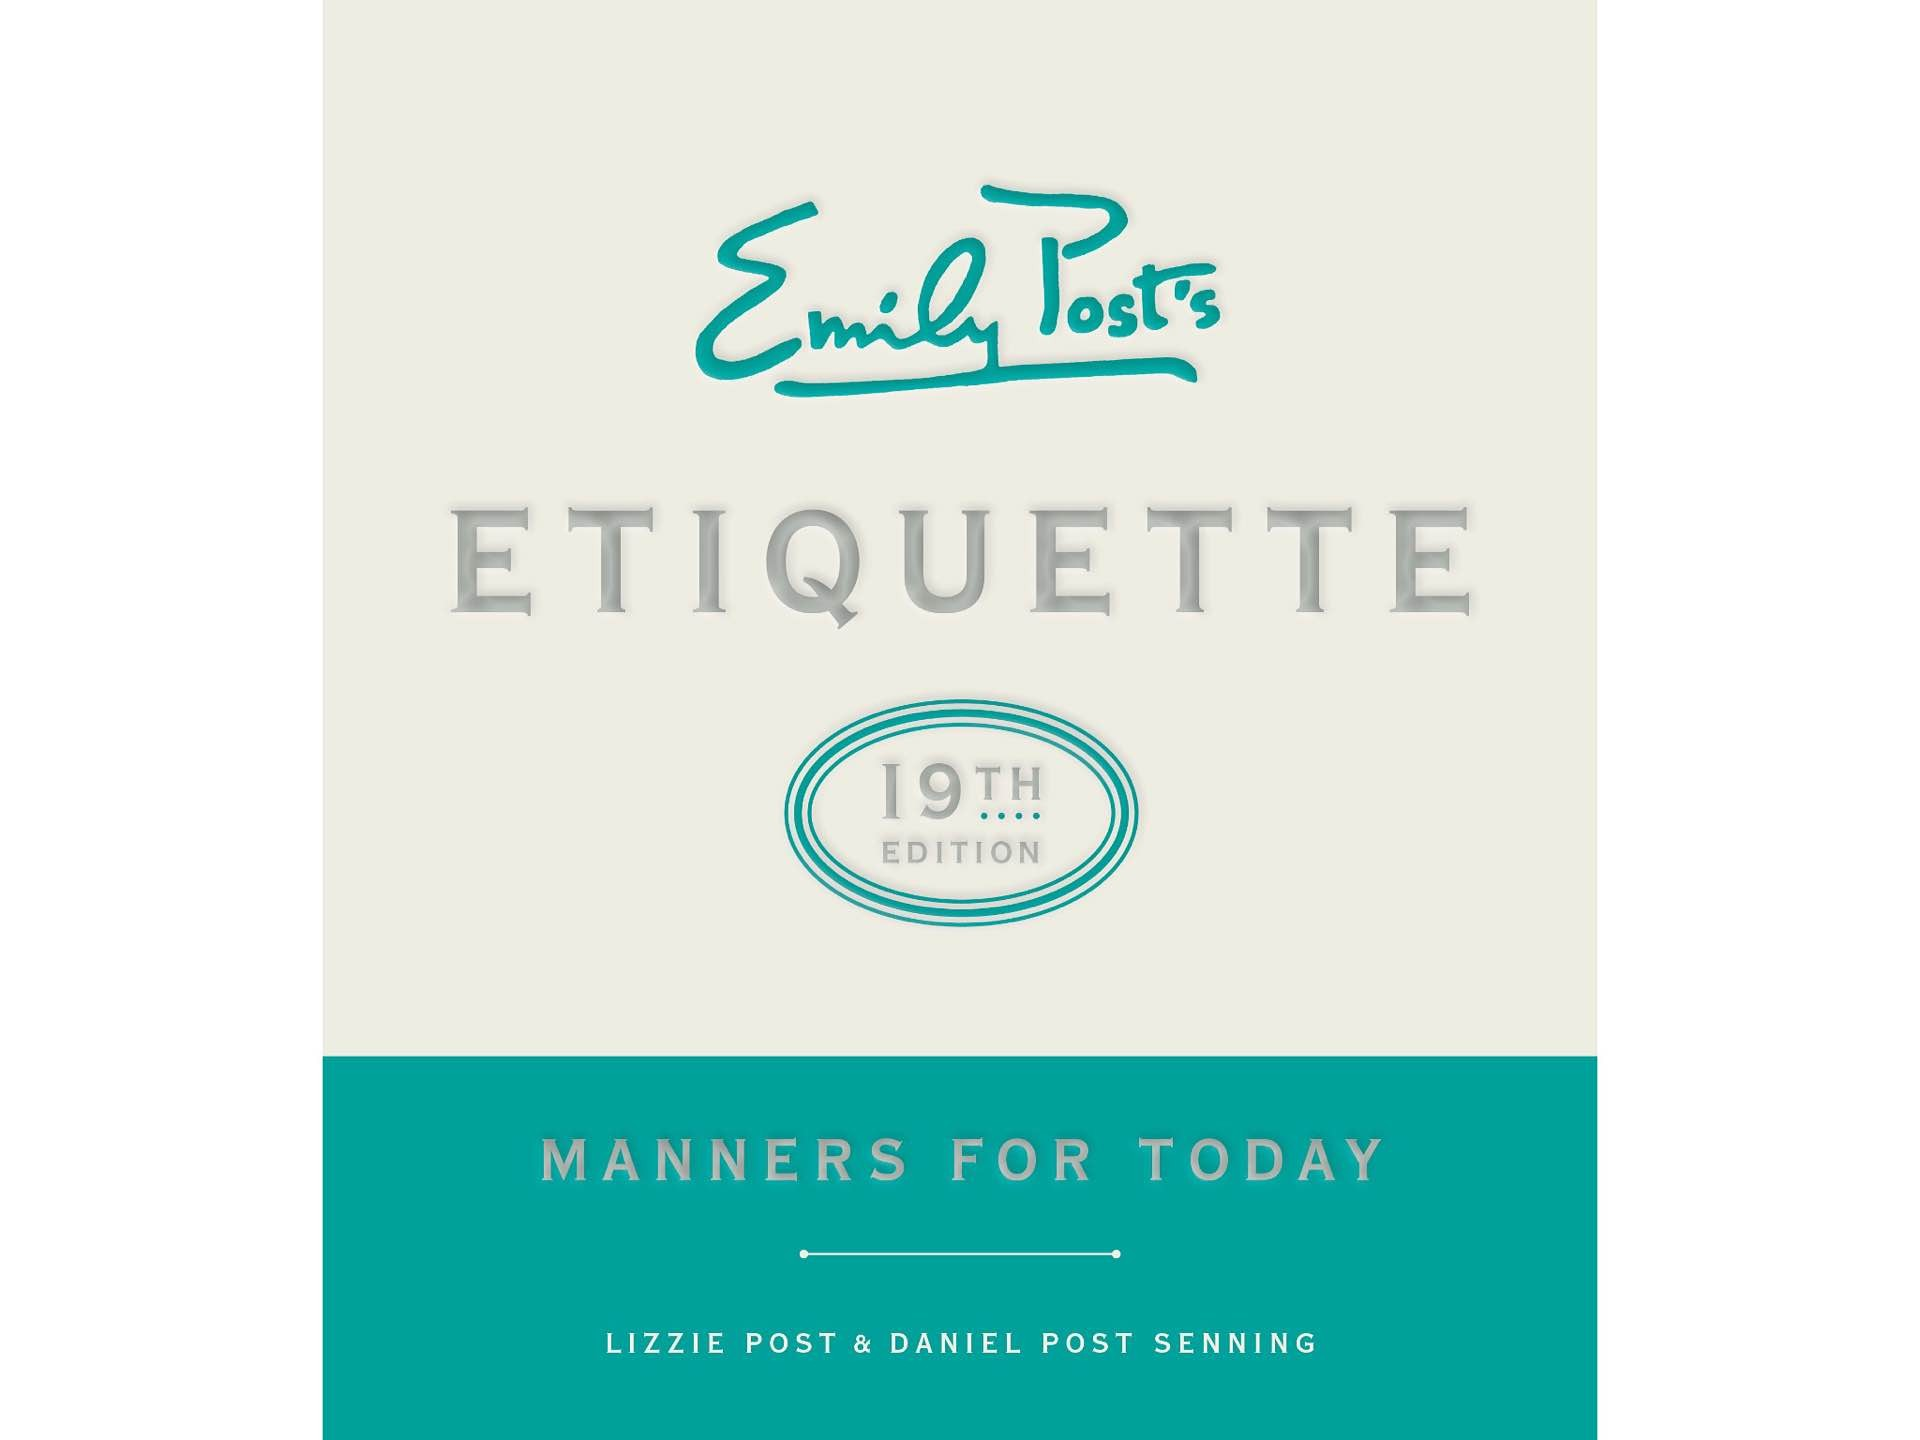 Emily Post's Etiquette (19th edition) by Lizzie Post and Daniel Post Senning.